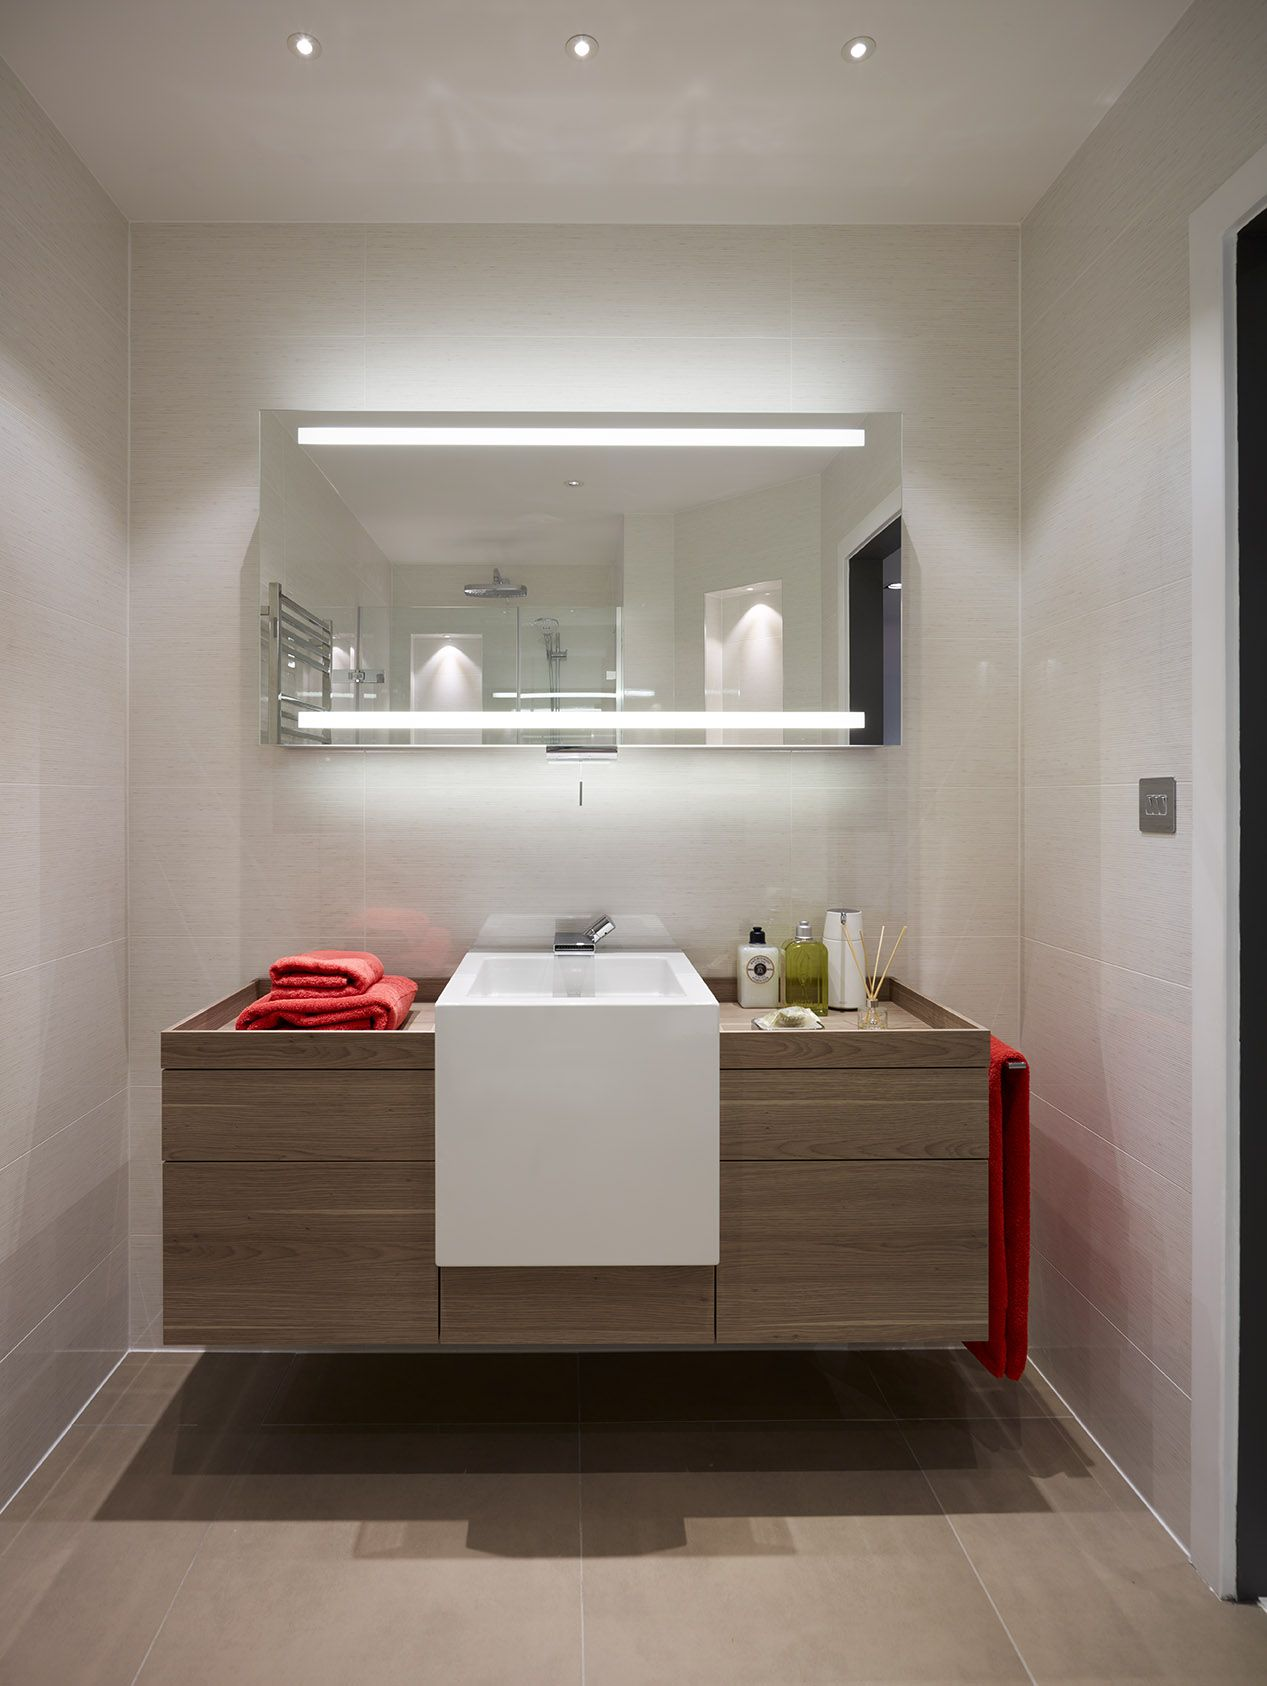 Inspirational An Alape wall hung wash area in wood effect laminate seemingly floats above Villeroy u Boch